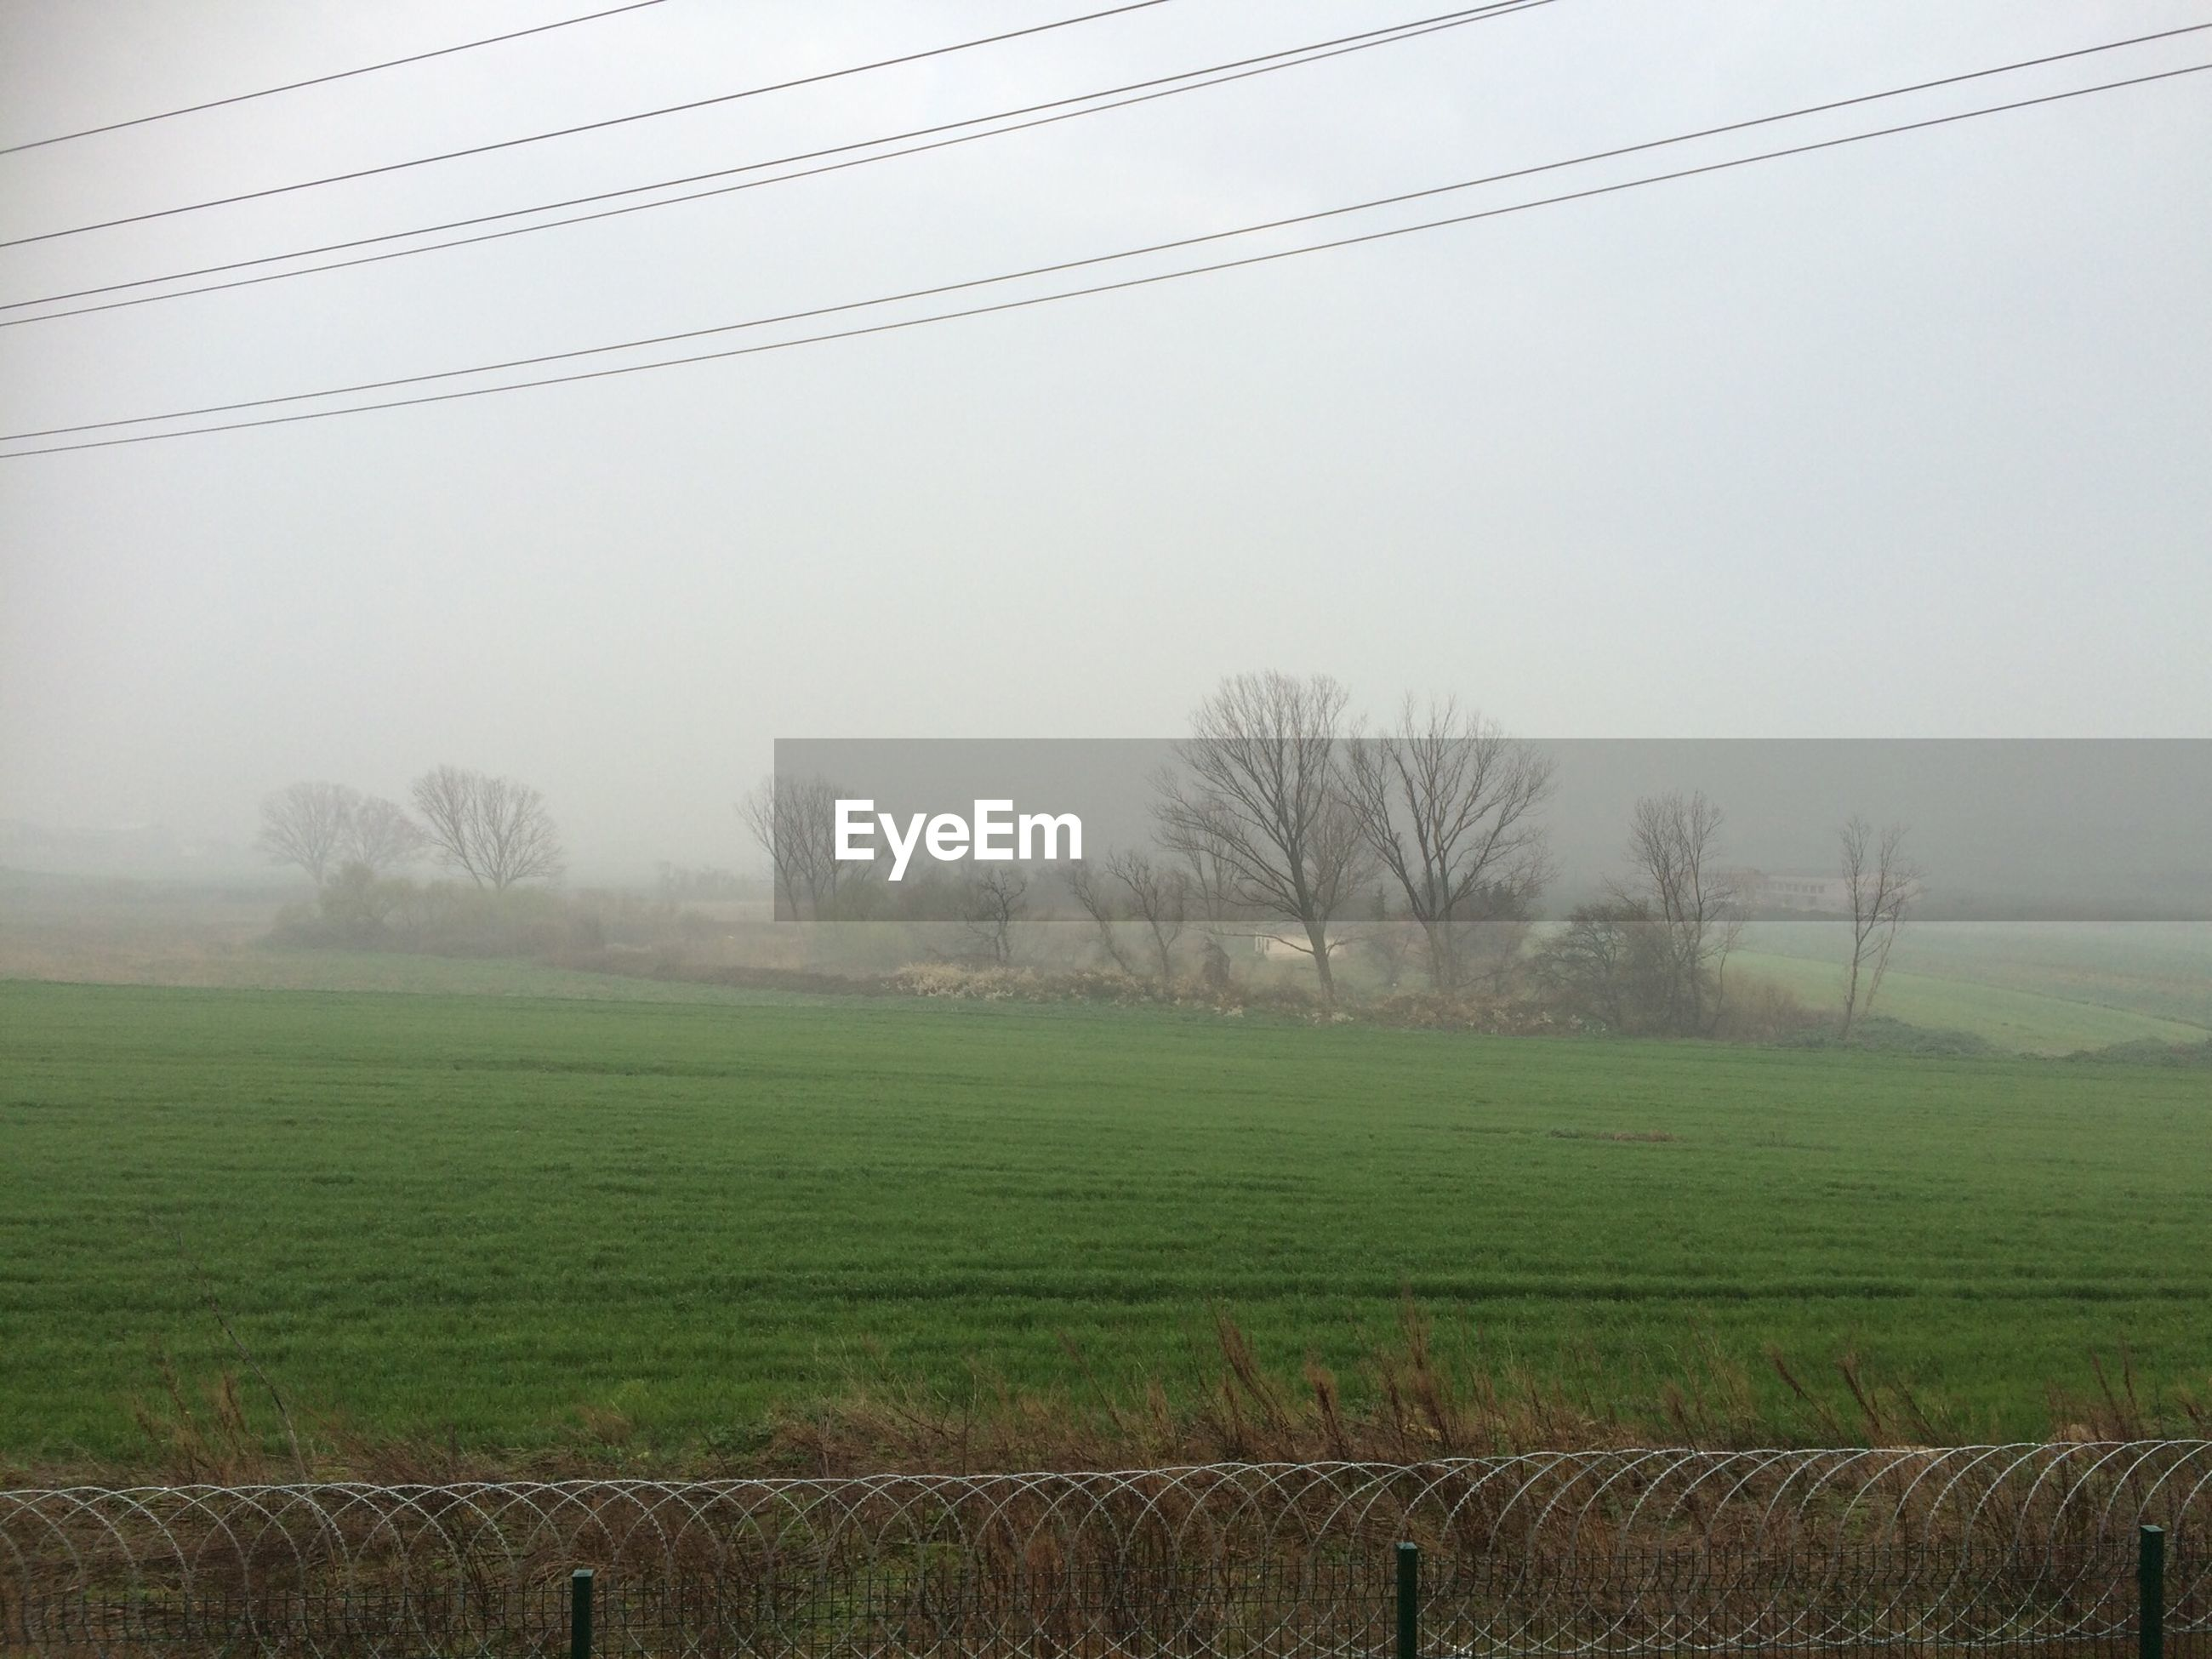 field, landscape, grass, fog, tranquility, tranquil scene, rural scene, tree, nature, power line, grassy, electricity pylon, fence, foggy, scenics, beauty in nature, agriculture, weather, sky